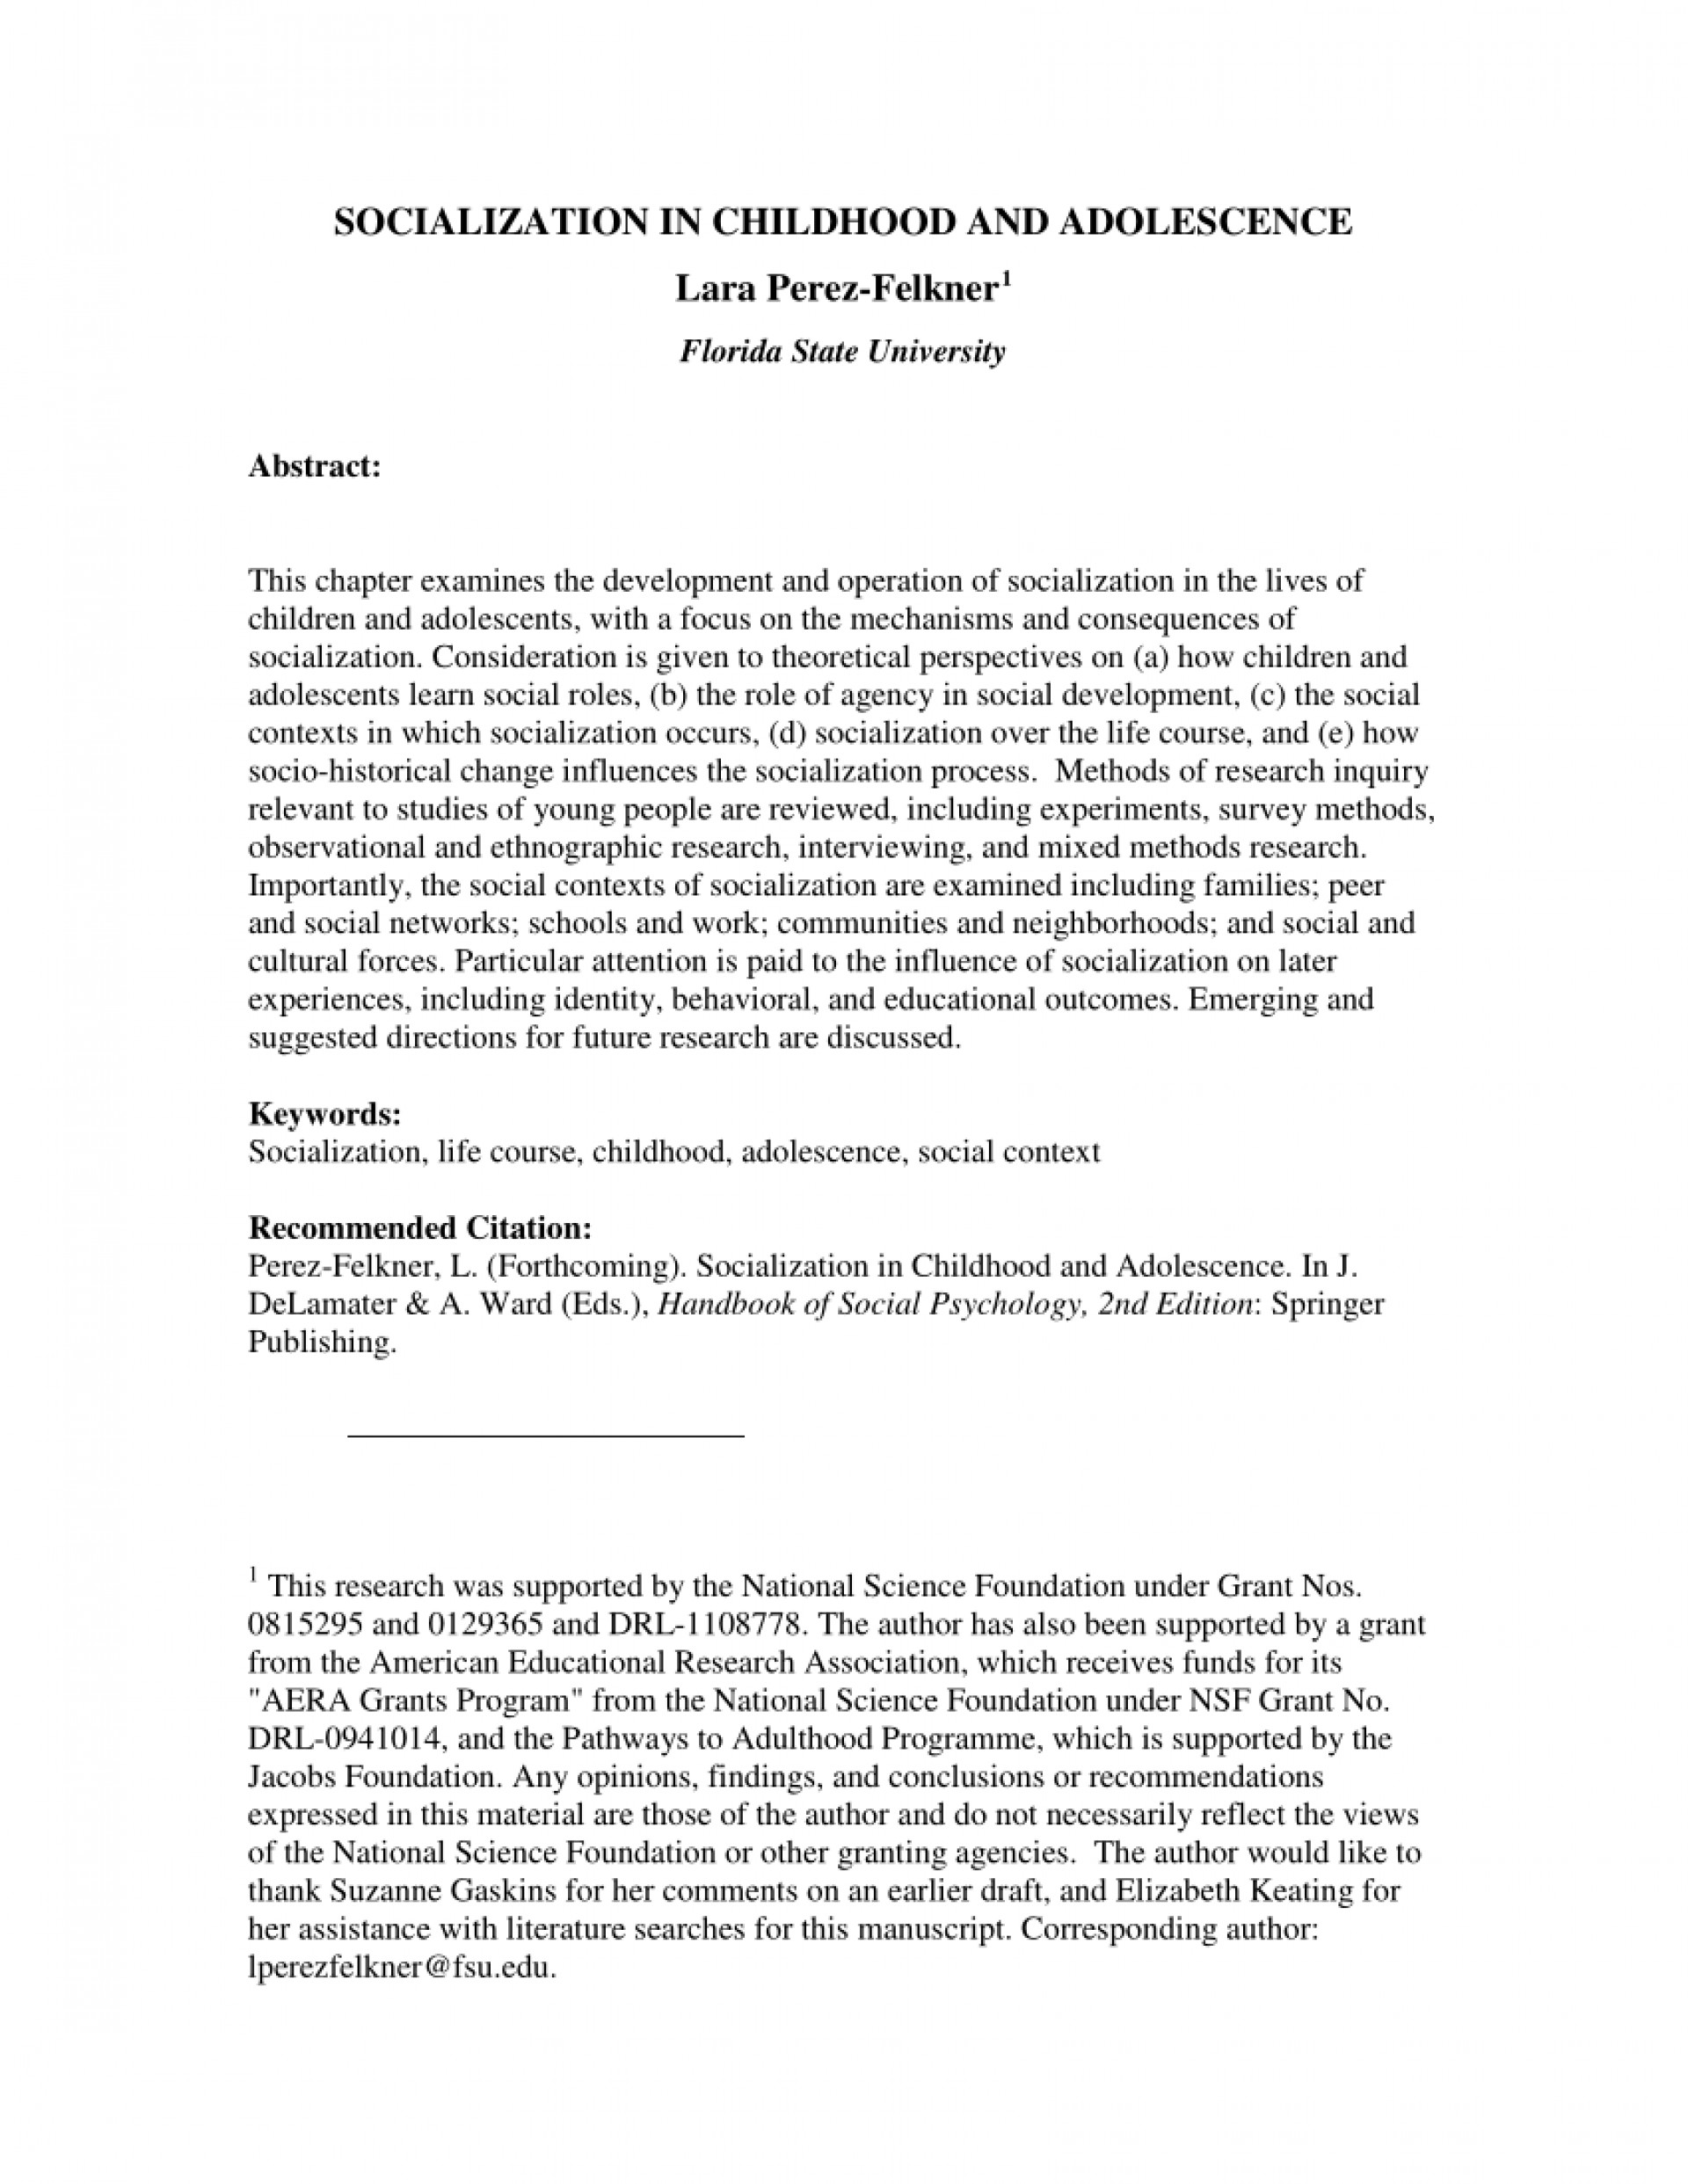 001 Abstract Research Paper About Child And Adolescent Development Pdf Outstanding 1920